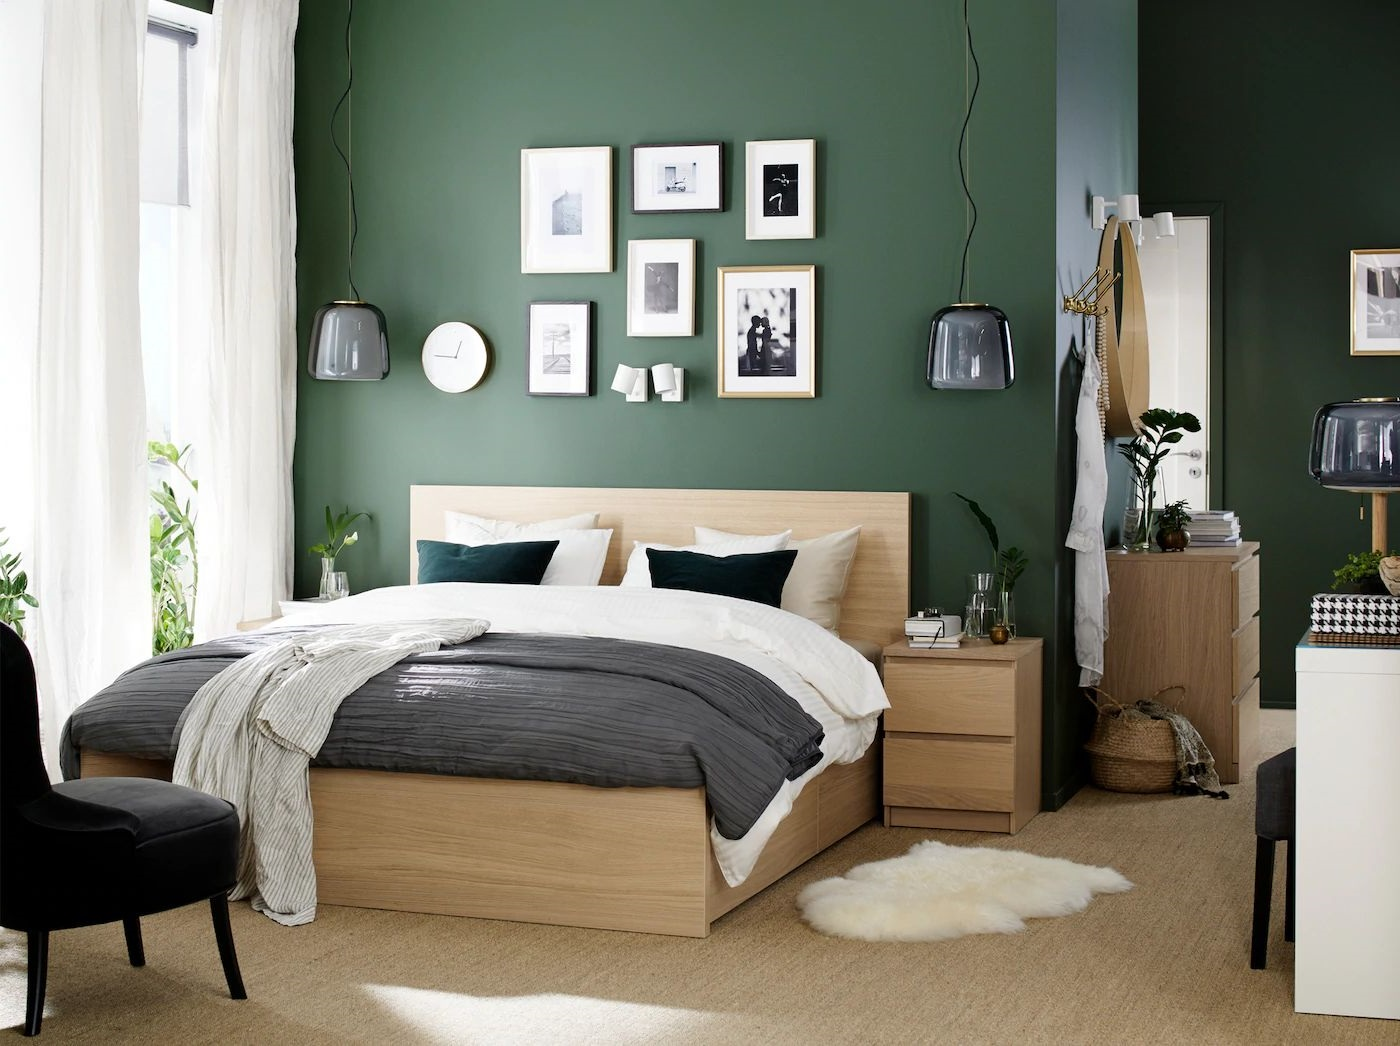 Chambre A Coucher Parentale Moderne Vegetalisee